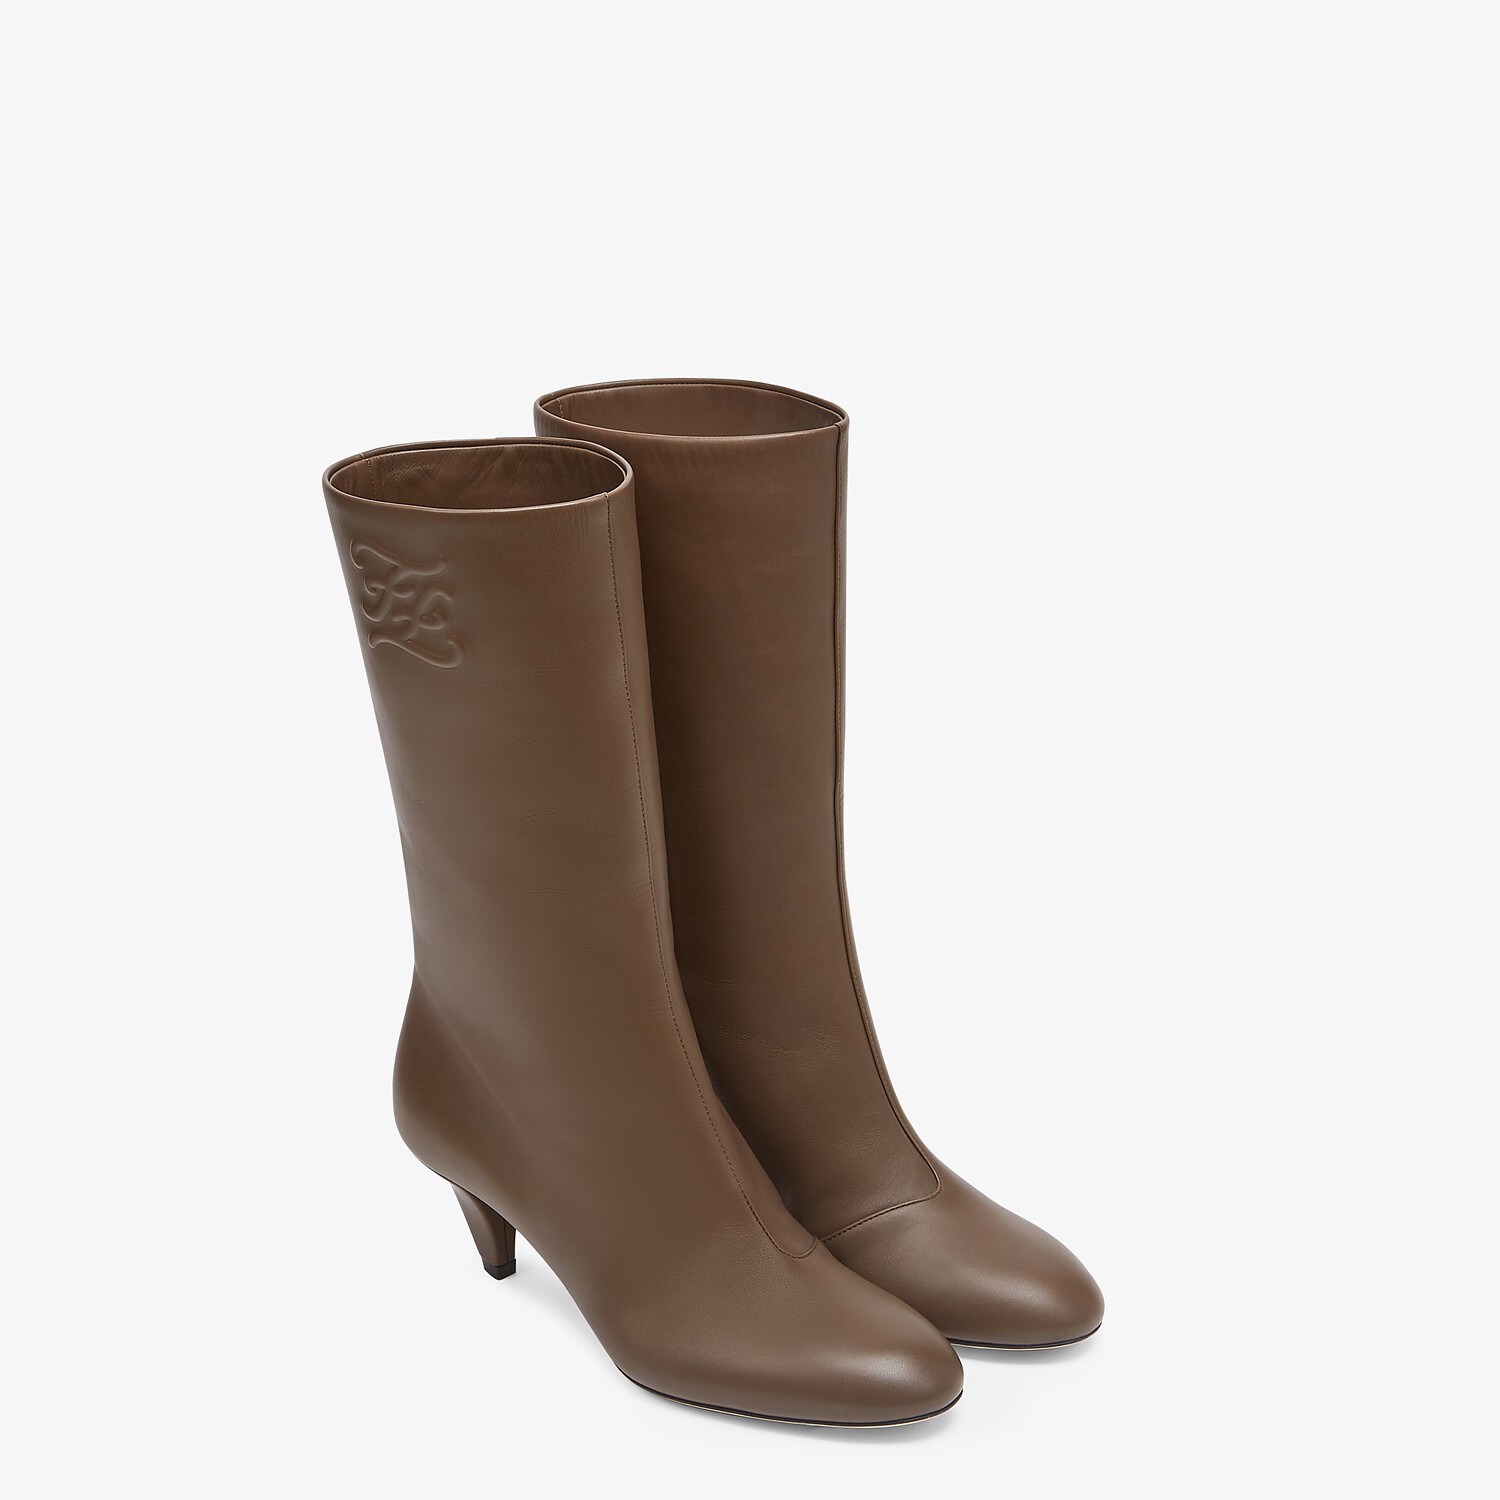 FENDI KARLIGRAPHY - Brown leather boots with medium heel - view 4 detail